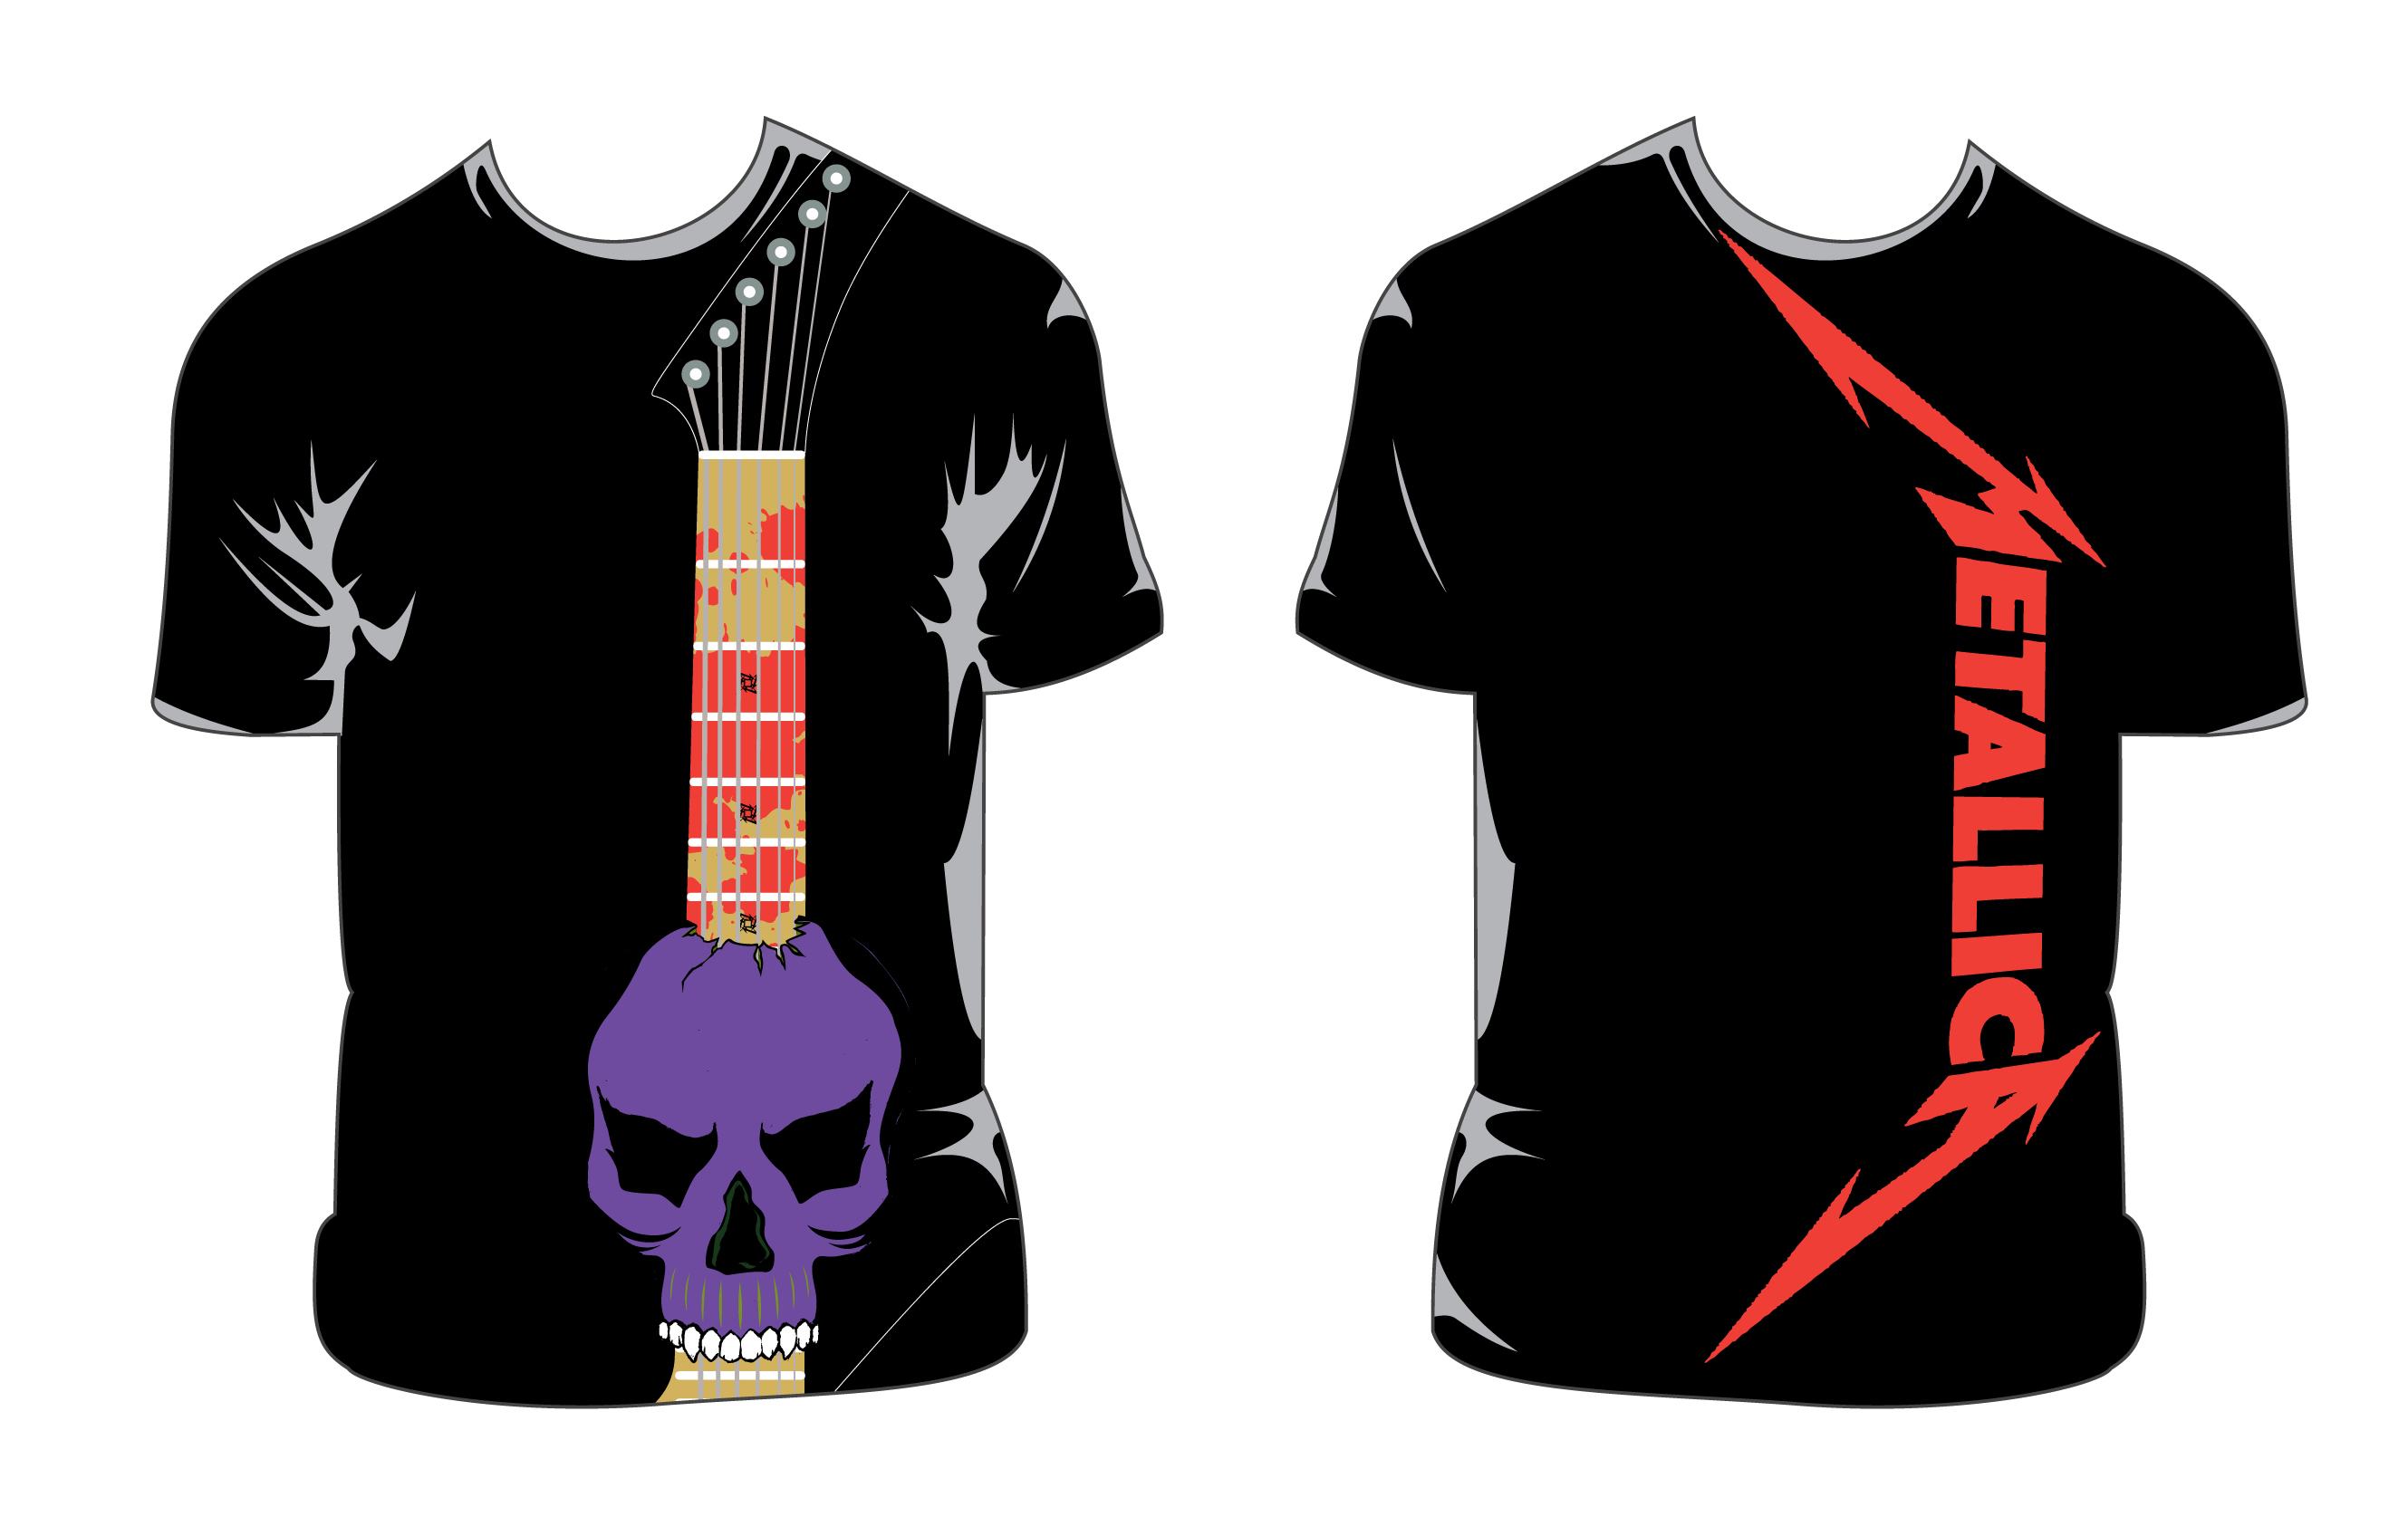 Design t shirt class - Metallica On Tour T Shirt This Is Part Of The Promotional Collateral I Designed For A Class Assignment Requiring Us To Design The Same For Our Favorite